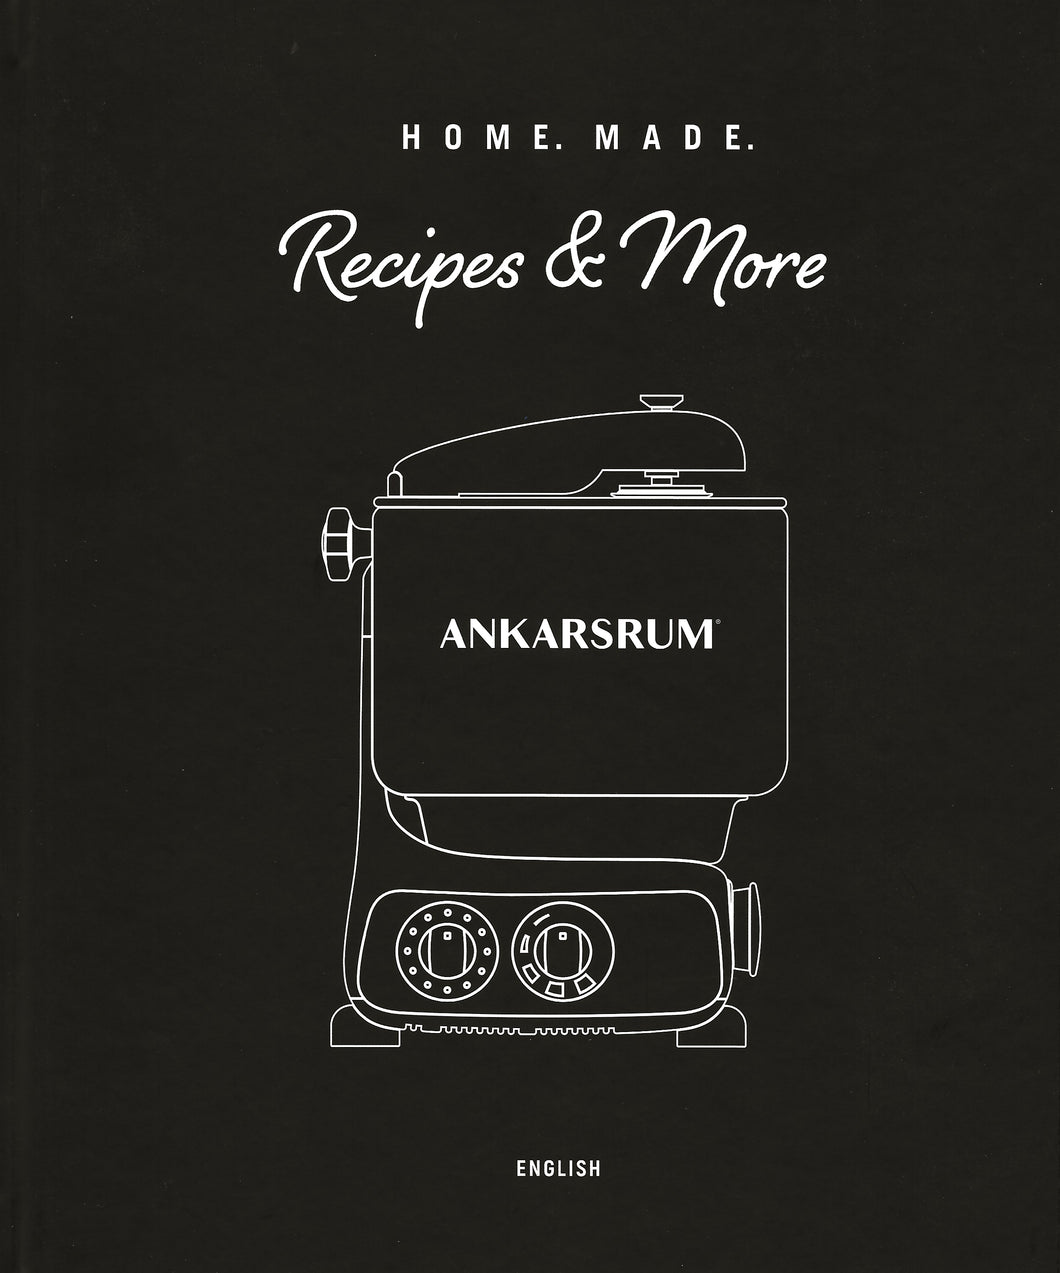 Ankarsrum Home Made Recipe Book